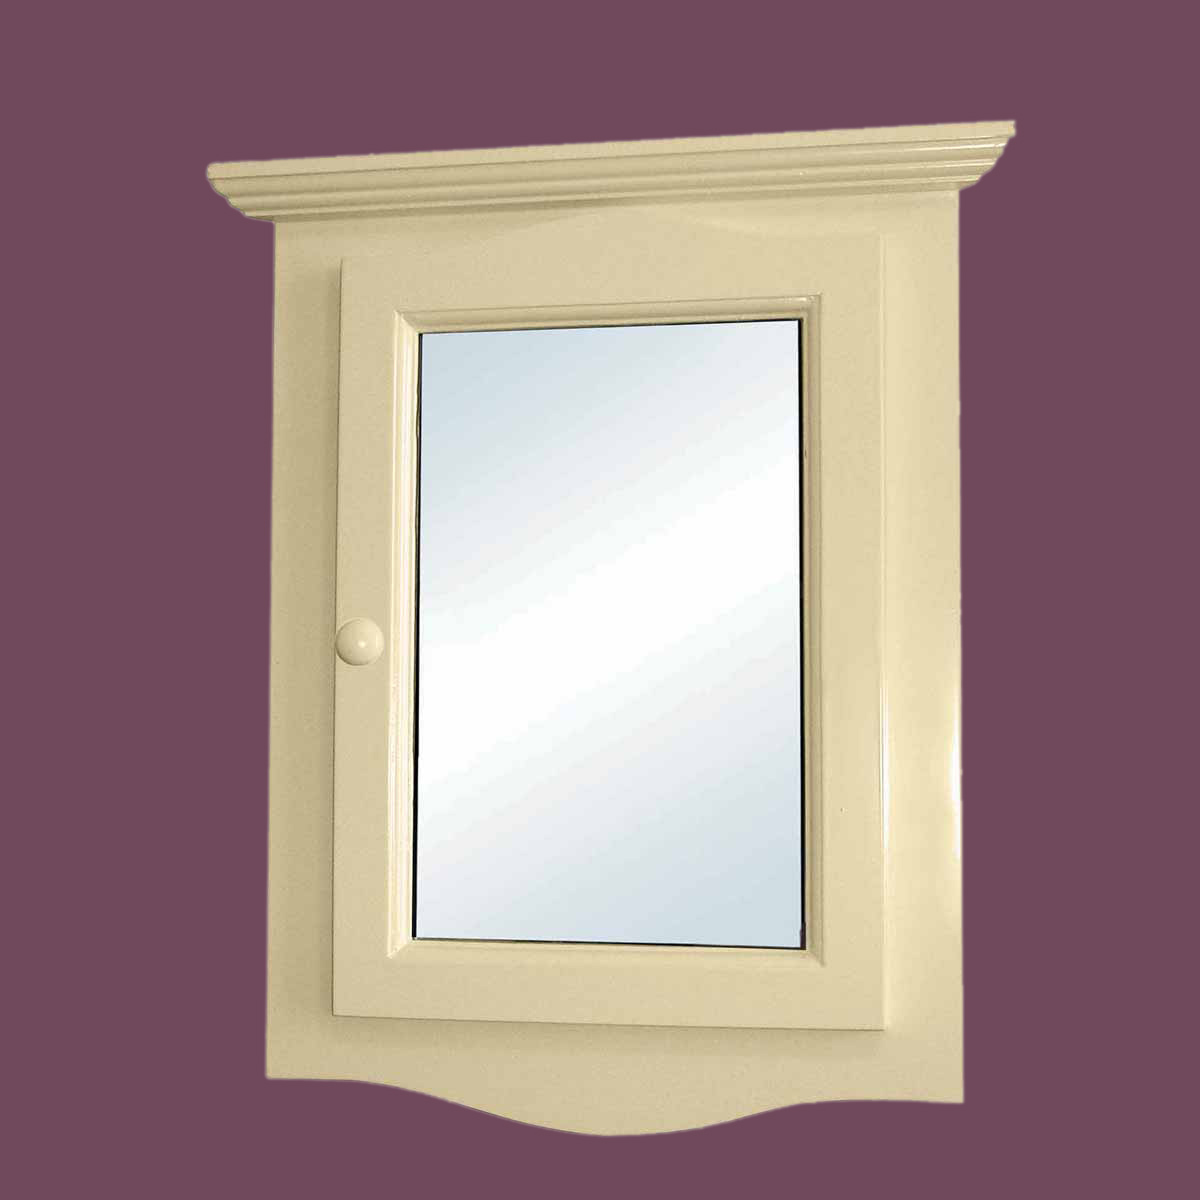 Marvelous photograph of Solid Wood Corner Medicine Mirror Cabinet Bone with #897642 color and 1200x1200 pixels